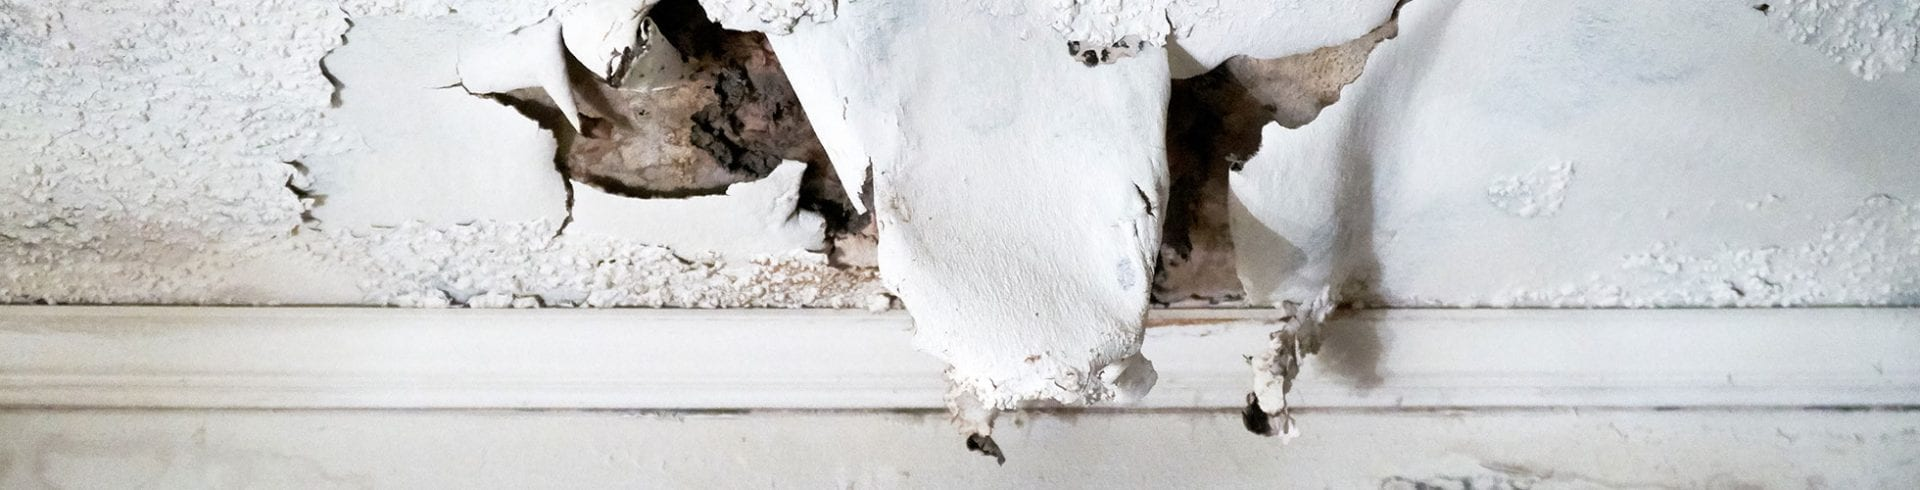 Tips & Tricks: Flooding and Mold | Blog | MoldOff®